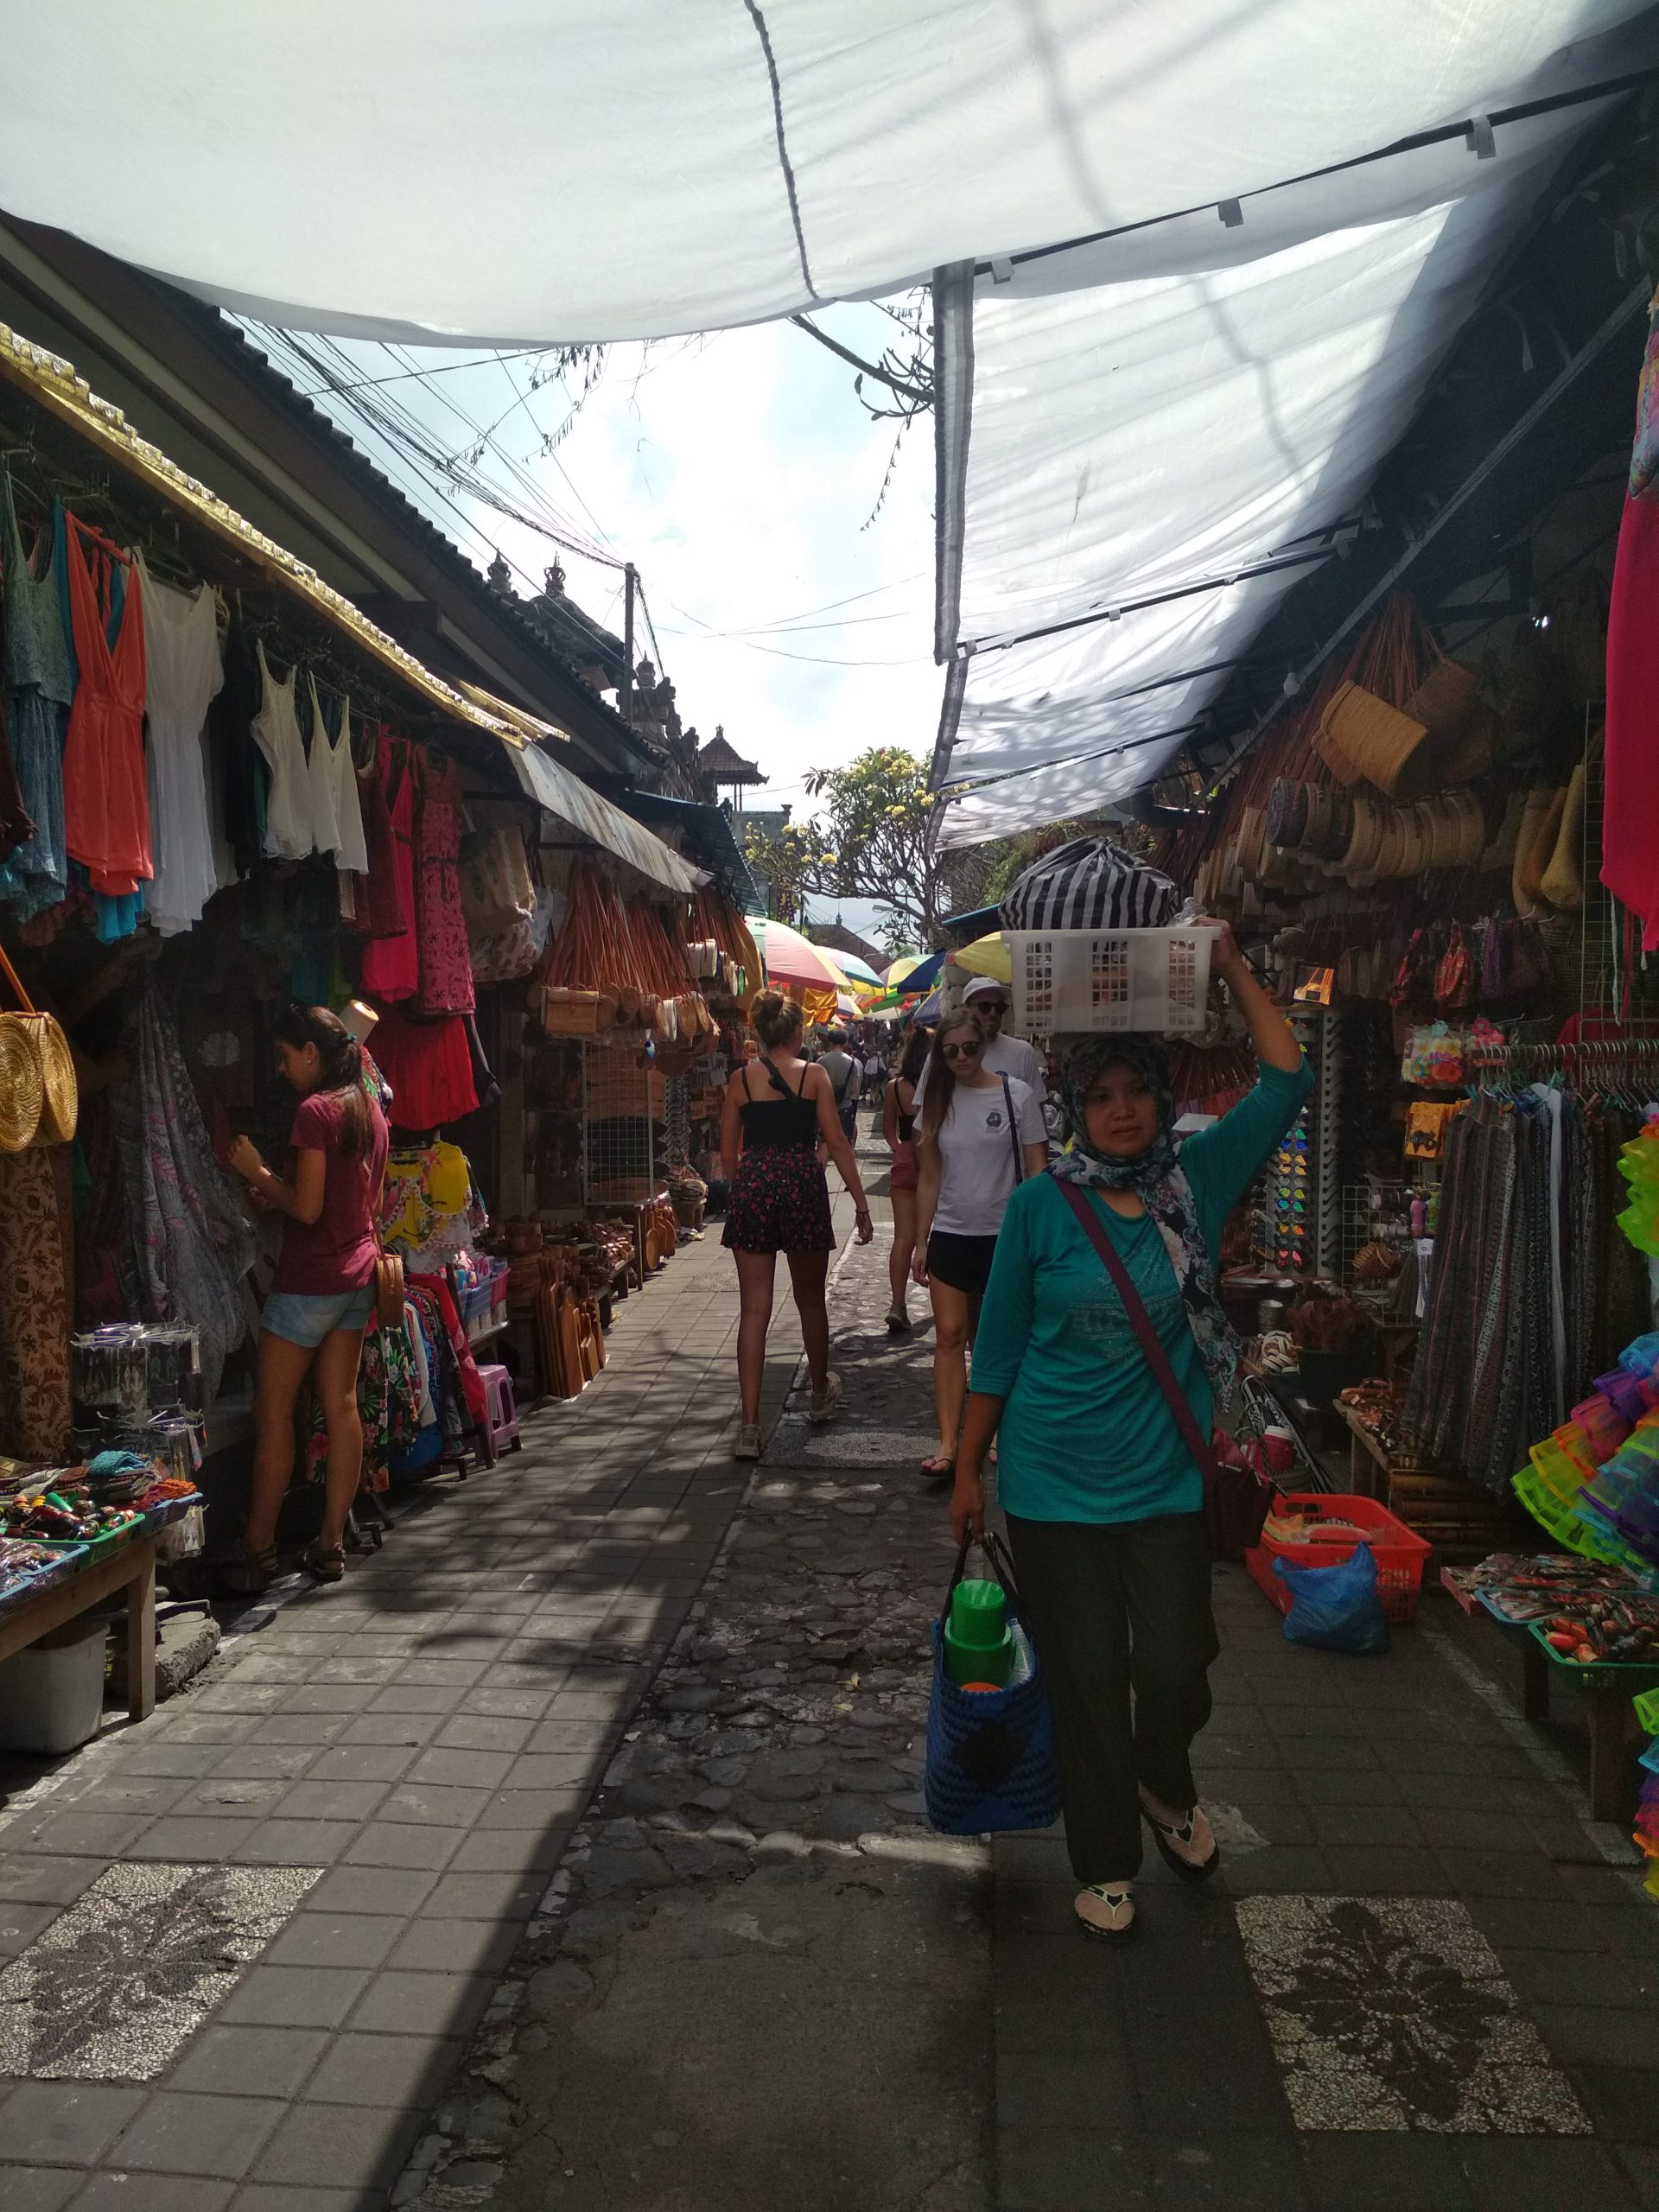 Bali Que ver en Ubud Mercado de Ubud scaled - Top 5 places to see in Ubud in one day